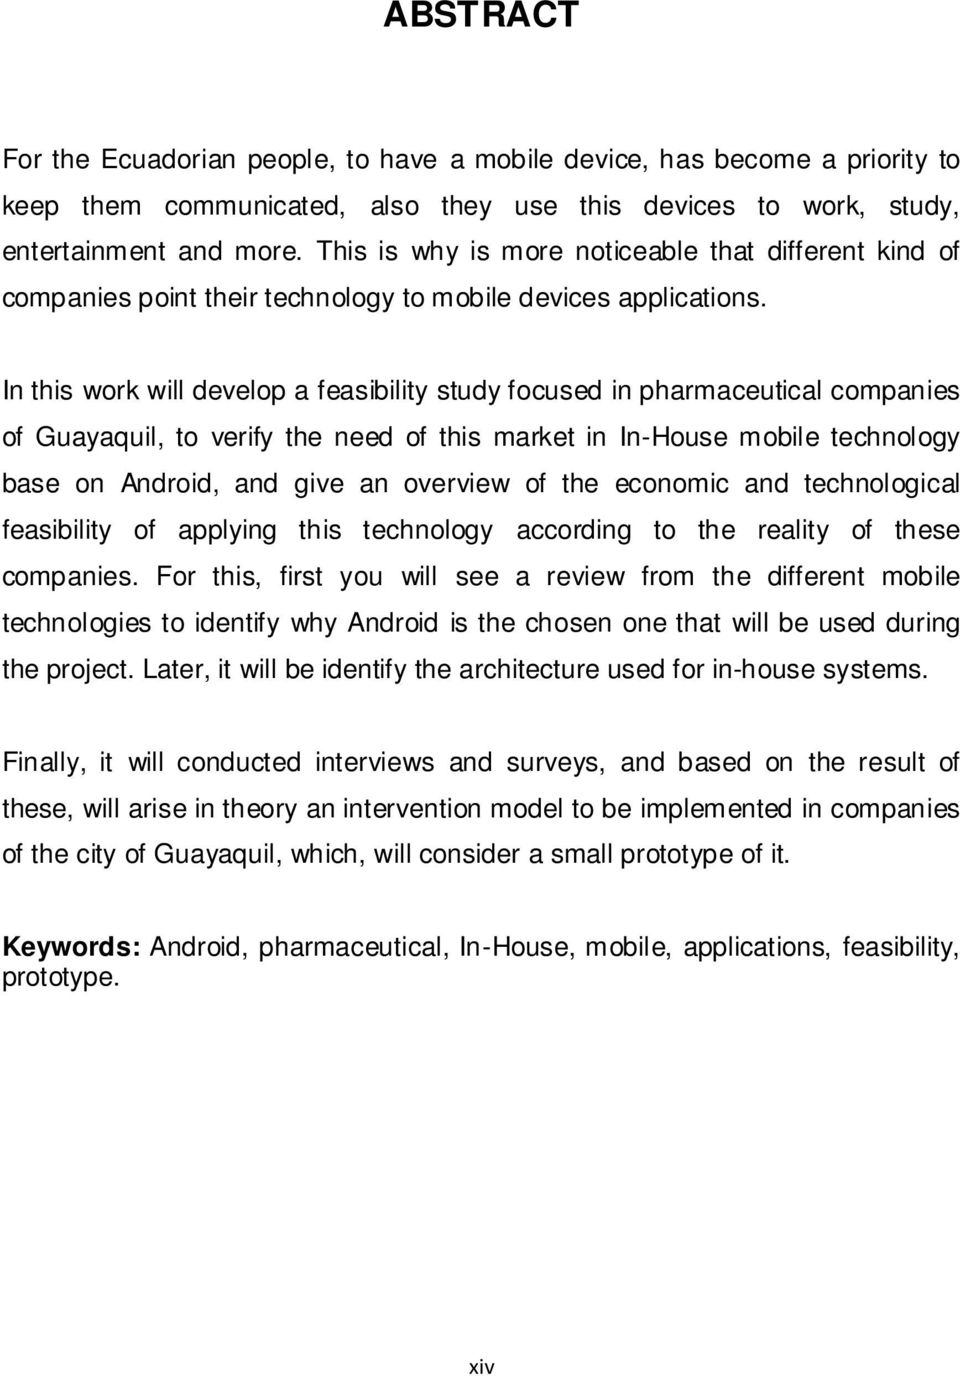 In this work will develop a feasibility study focused in pharmaceutical companies of Guayaquil, to verify the need of this market in In-House mobile technology base on Android, and give an overview